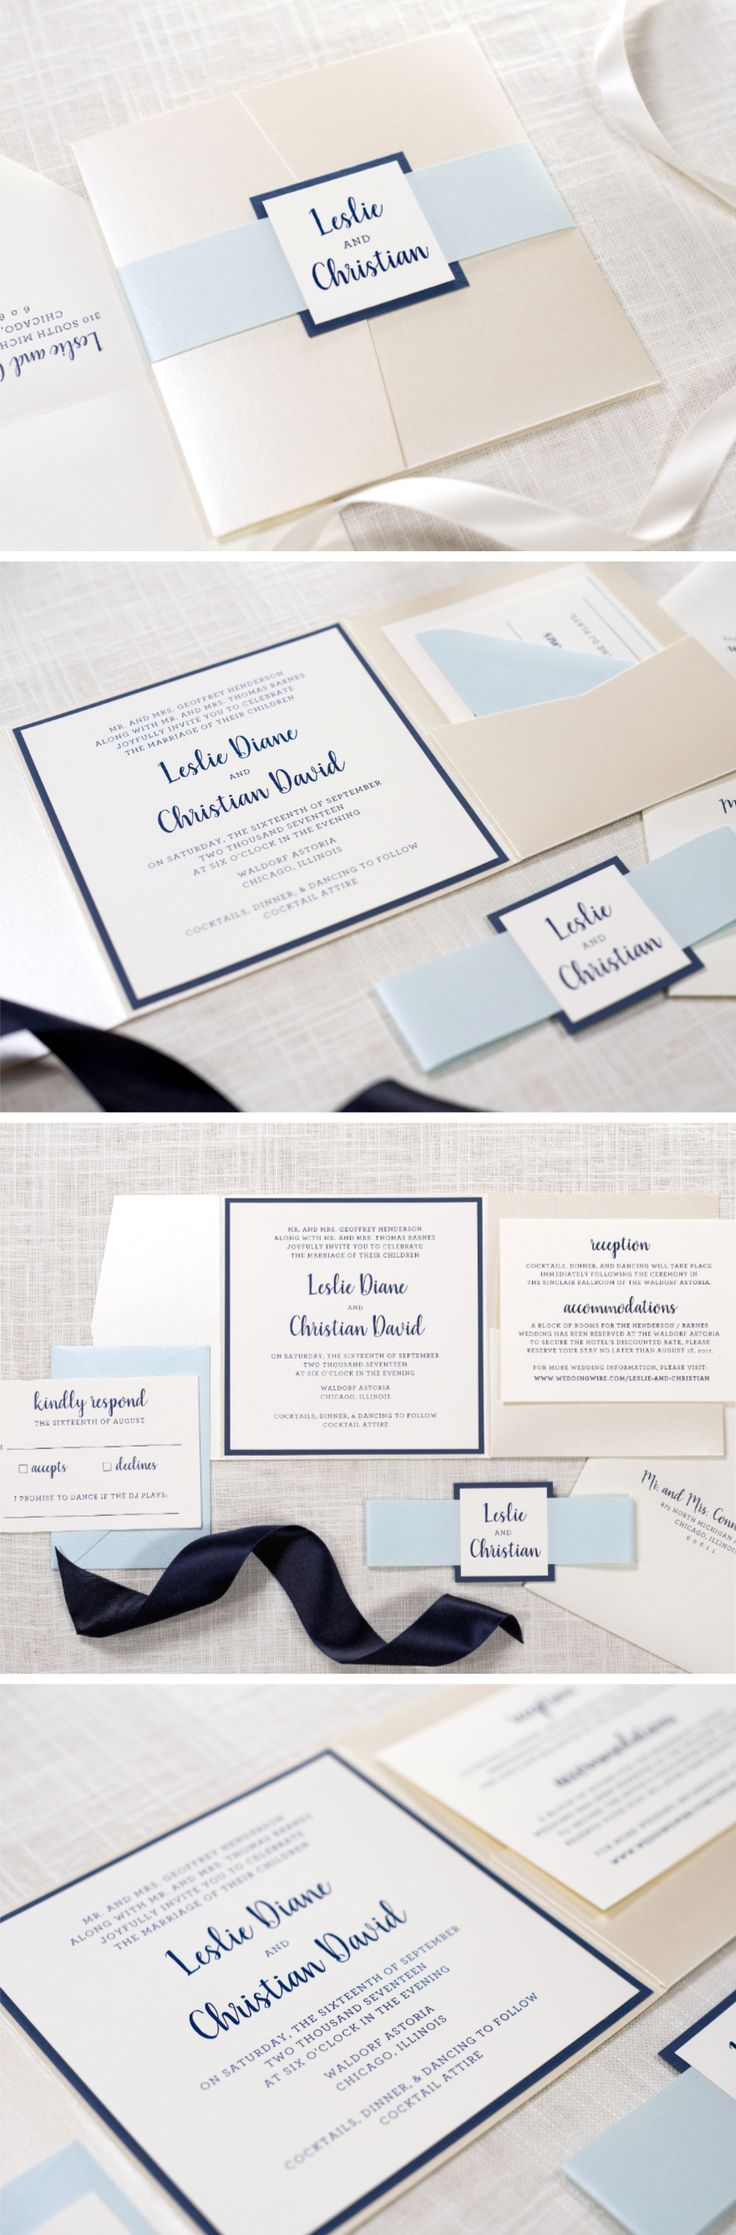 101 Best Chicago Wedding Invitations Images On Pinterest